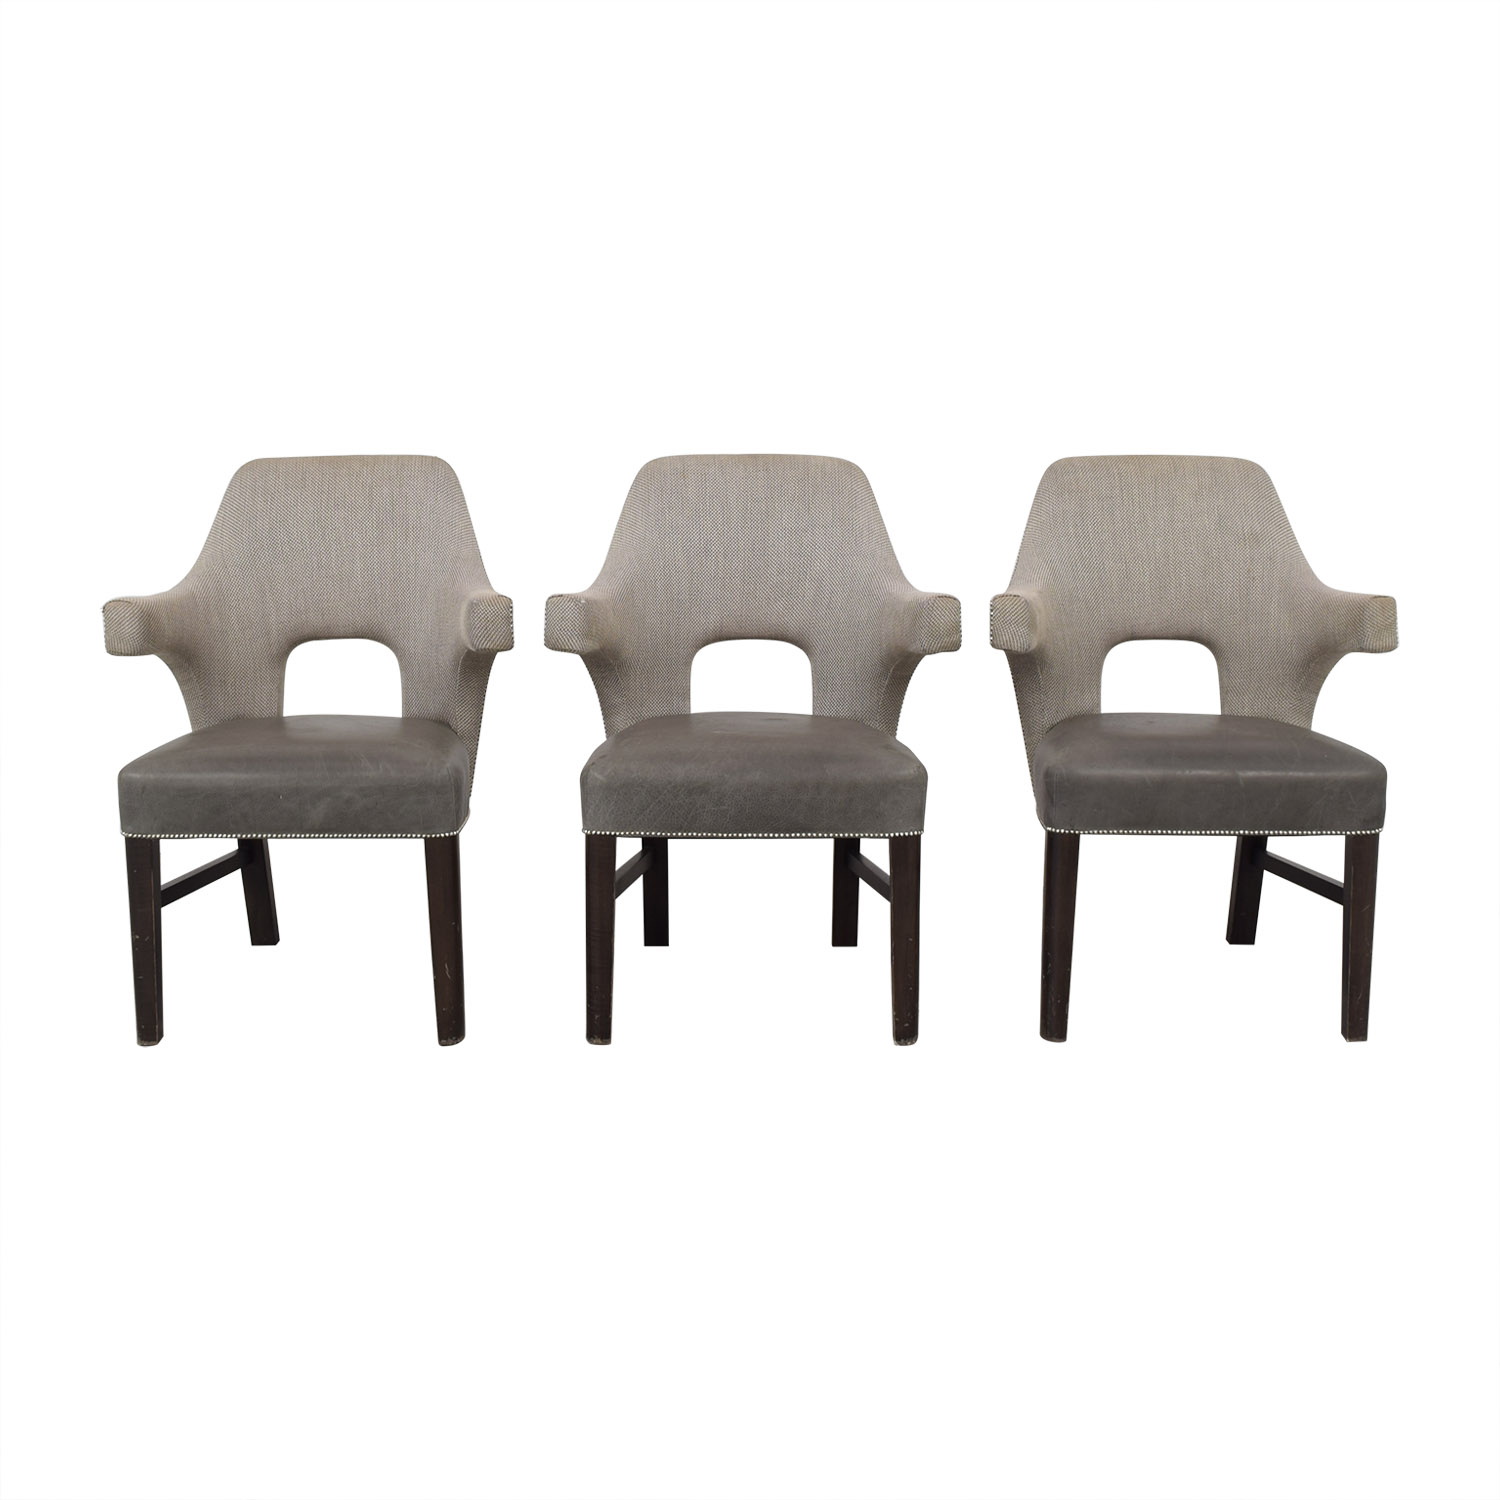 Thom Filicia Modern Dining Chairs / Chairs